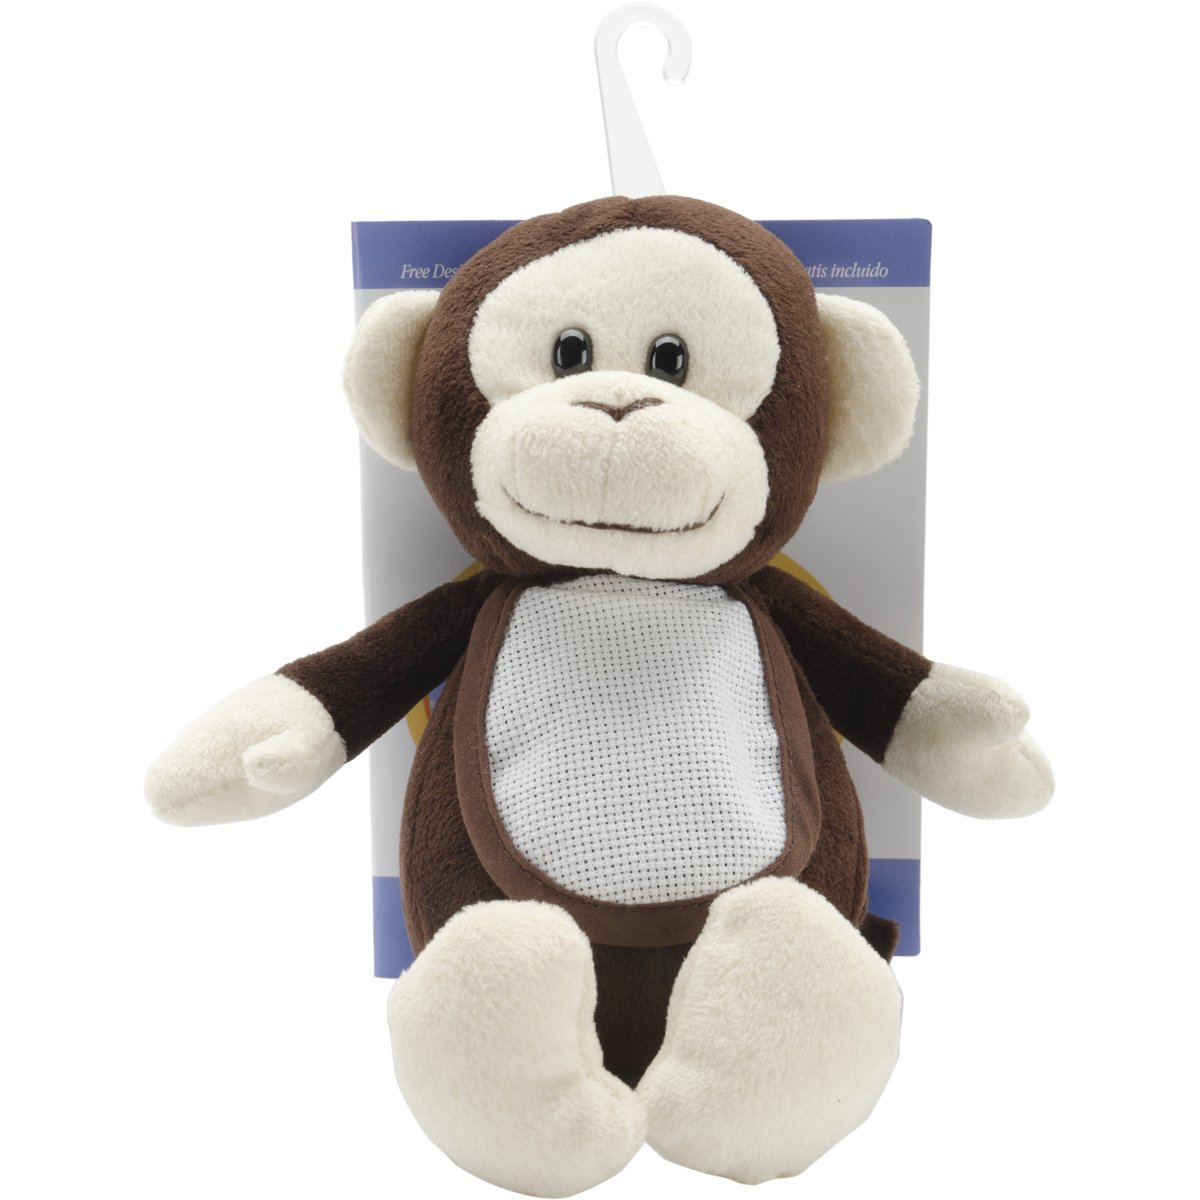 DMC GN-324 Ready to Stitch Stuffed Animal Baby Gift, Monkey Notions - In Network